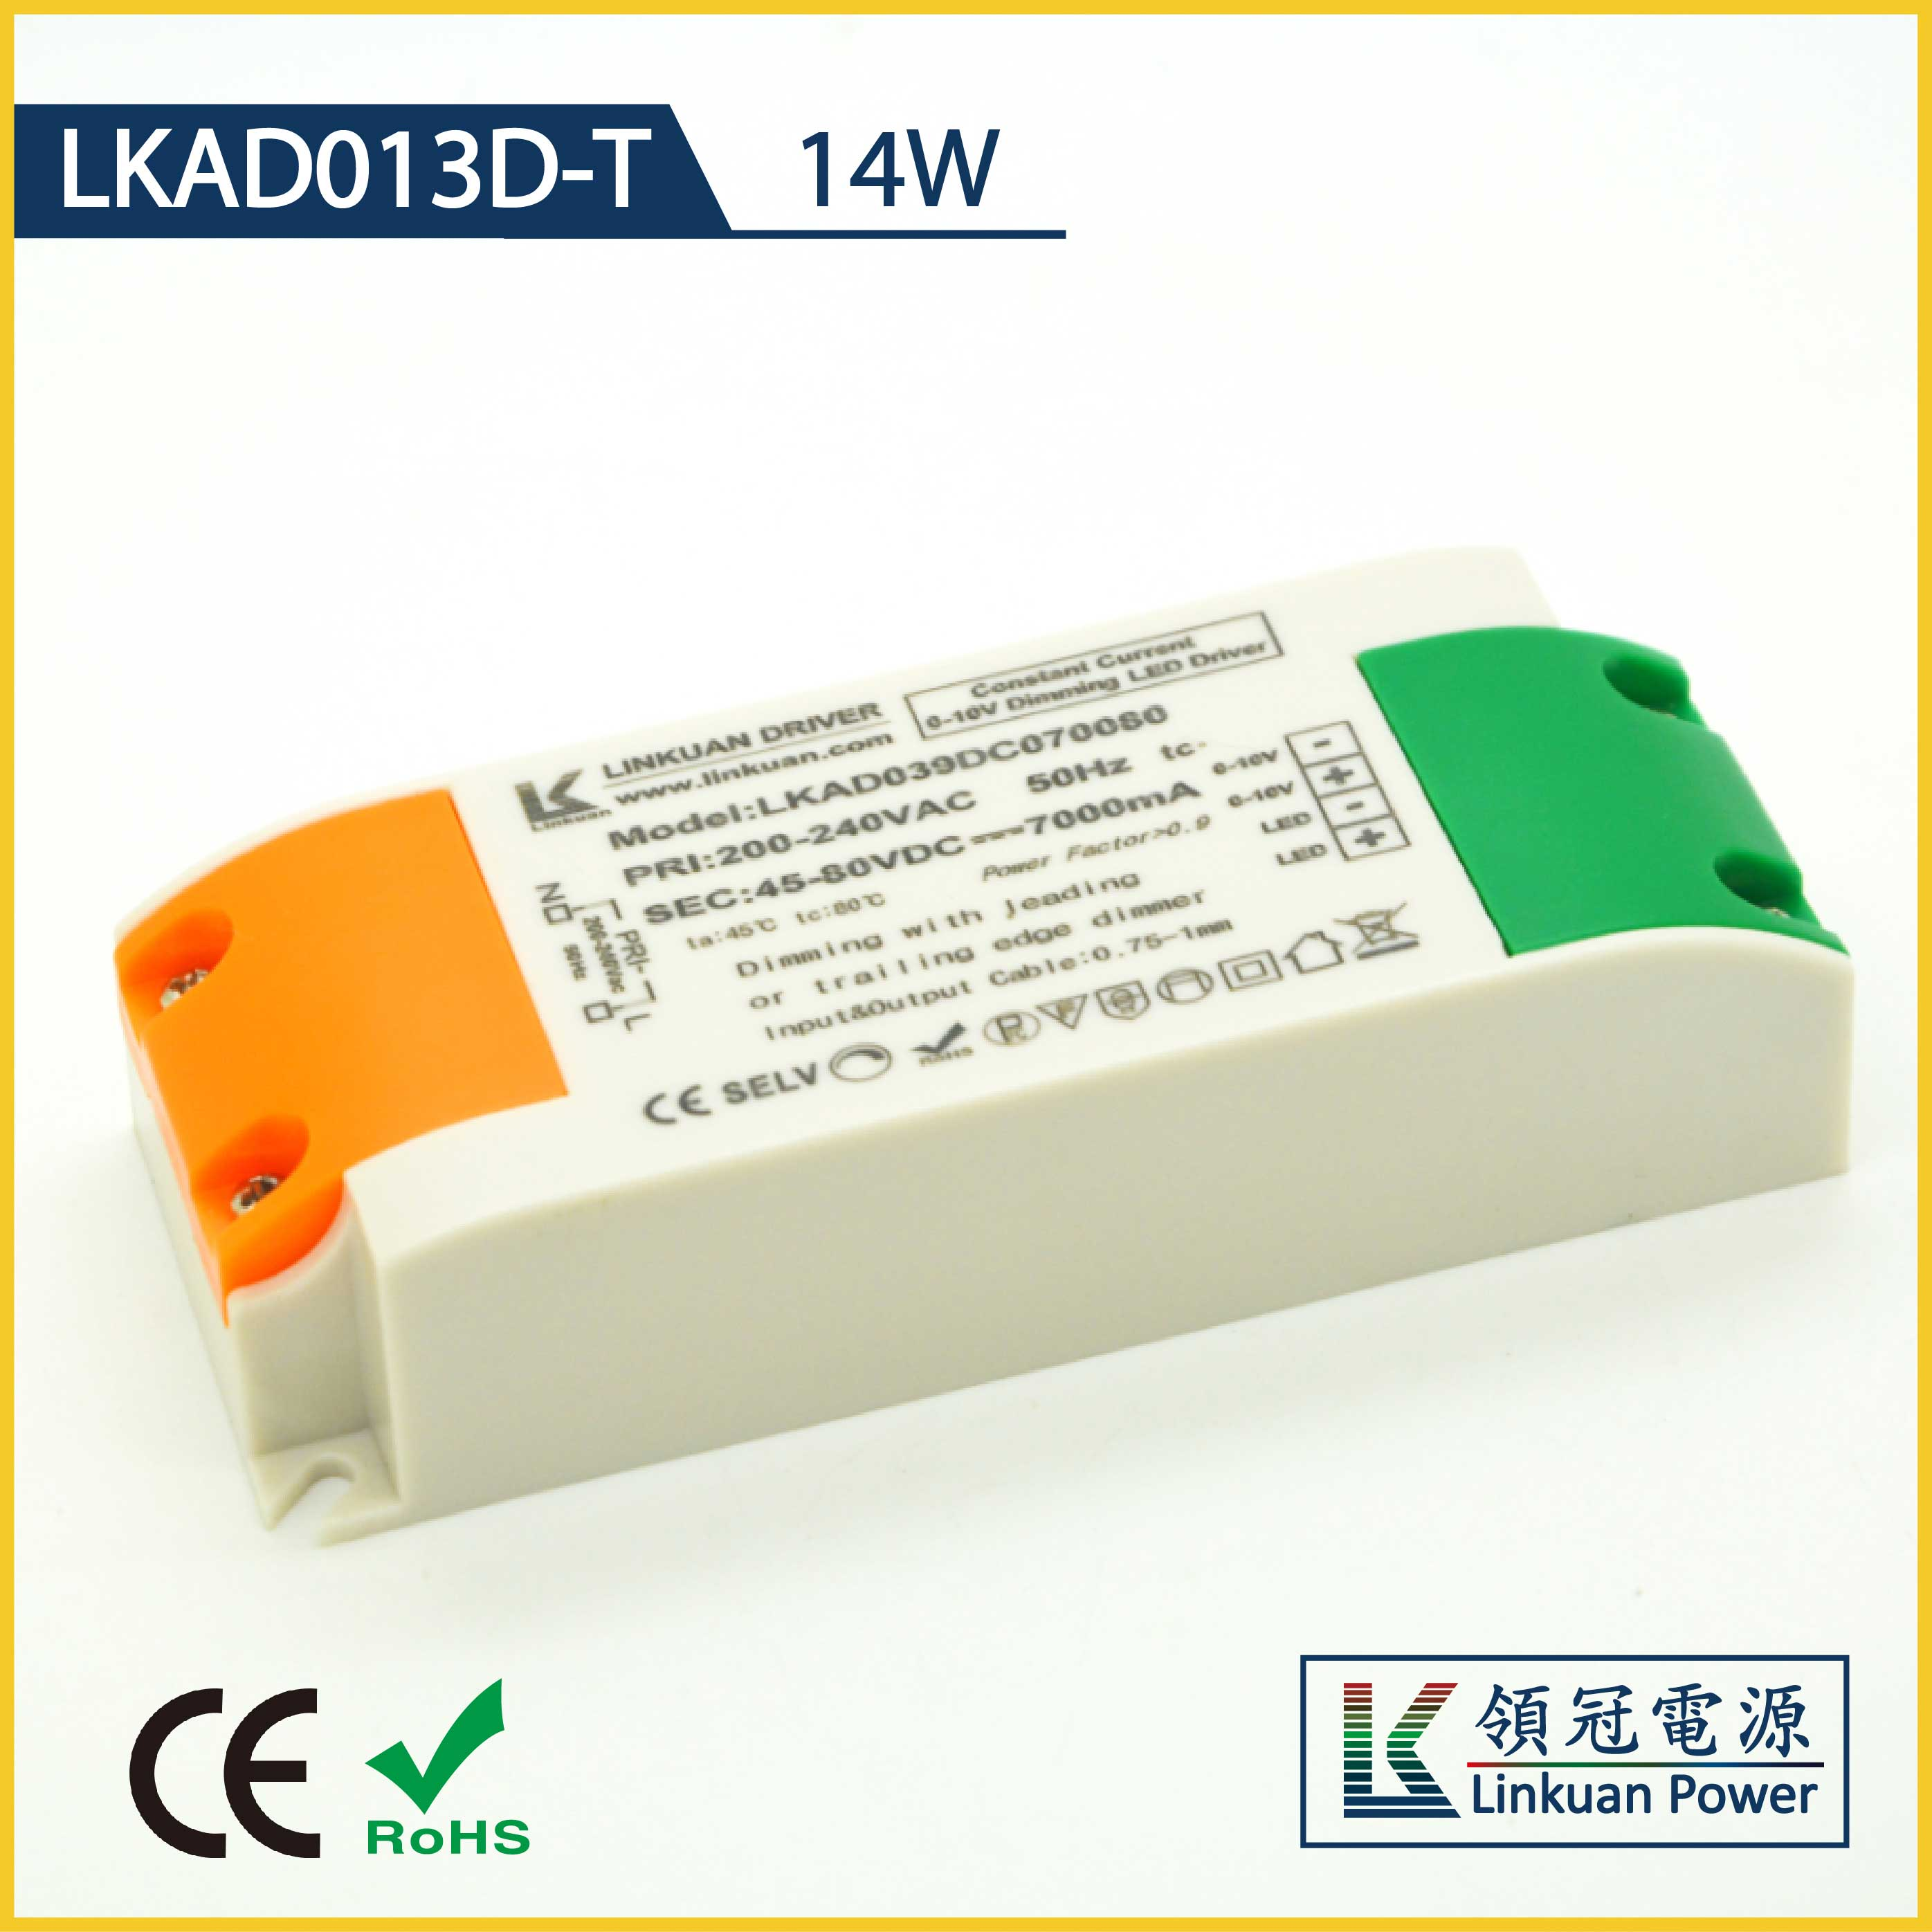 LKAD013D-T 14W 10-42V 350mA triac dimmable led driver with DIP switch